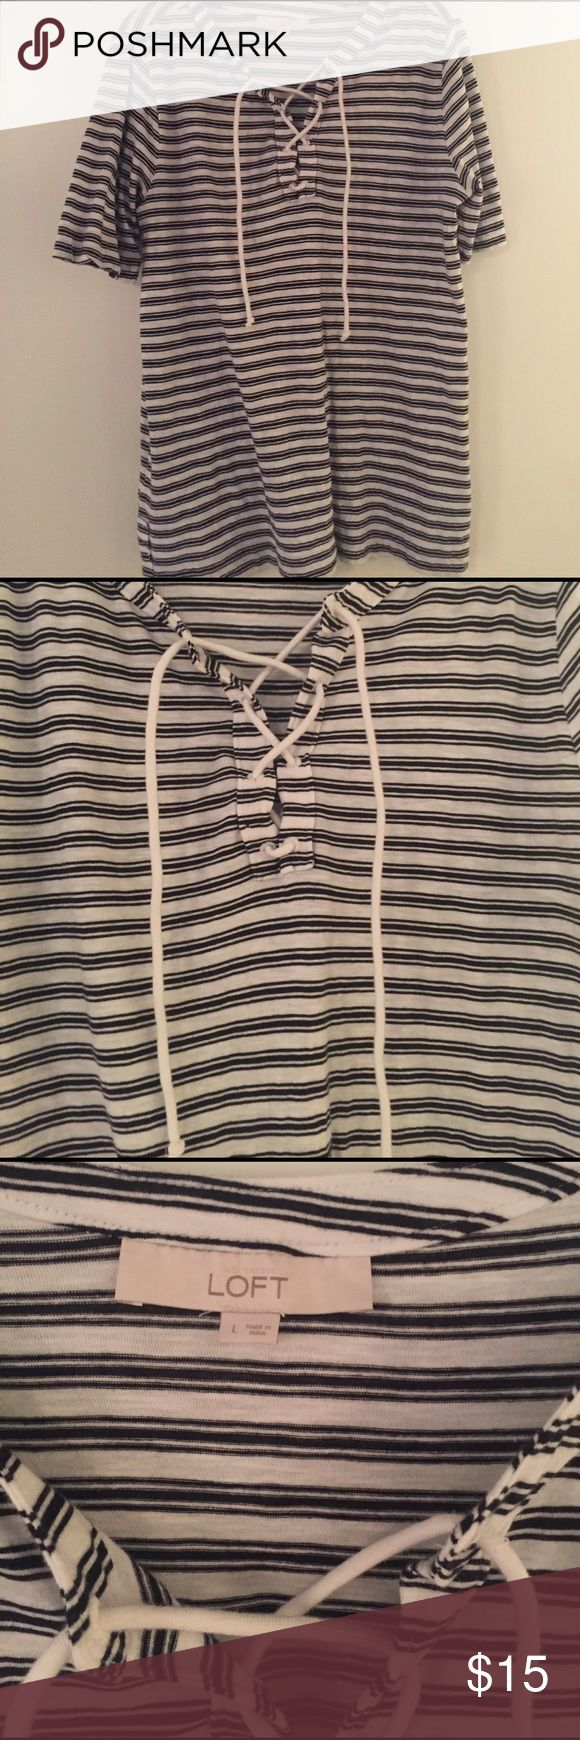 Short sleeve black and white top Lace front; tie up; black and white stripped shirt LOFT Tops Blouses